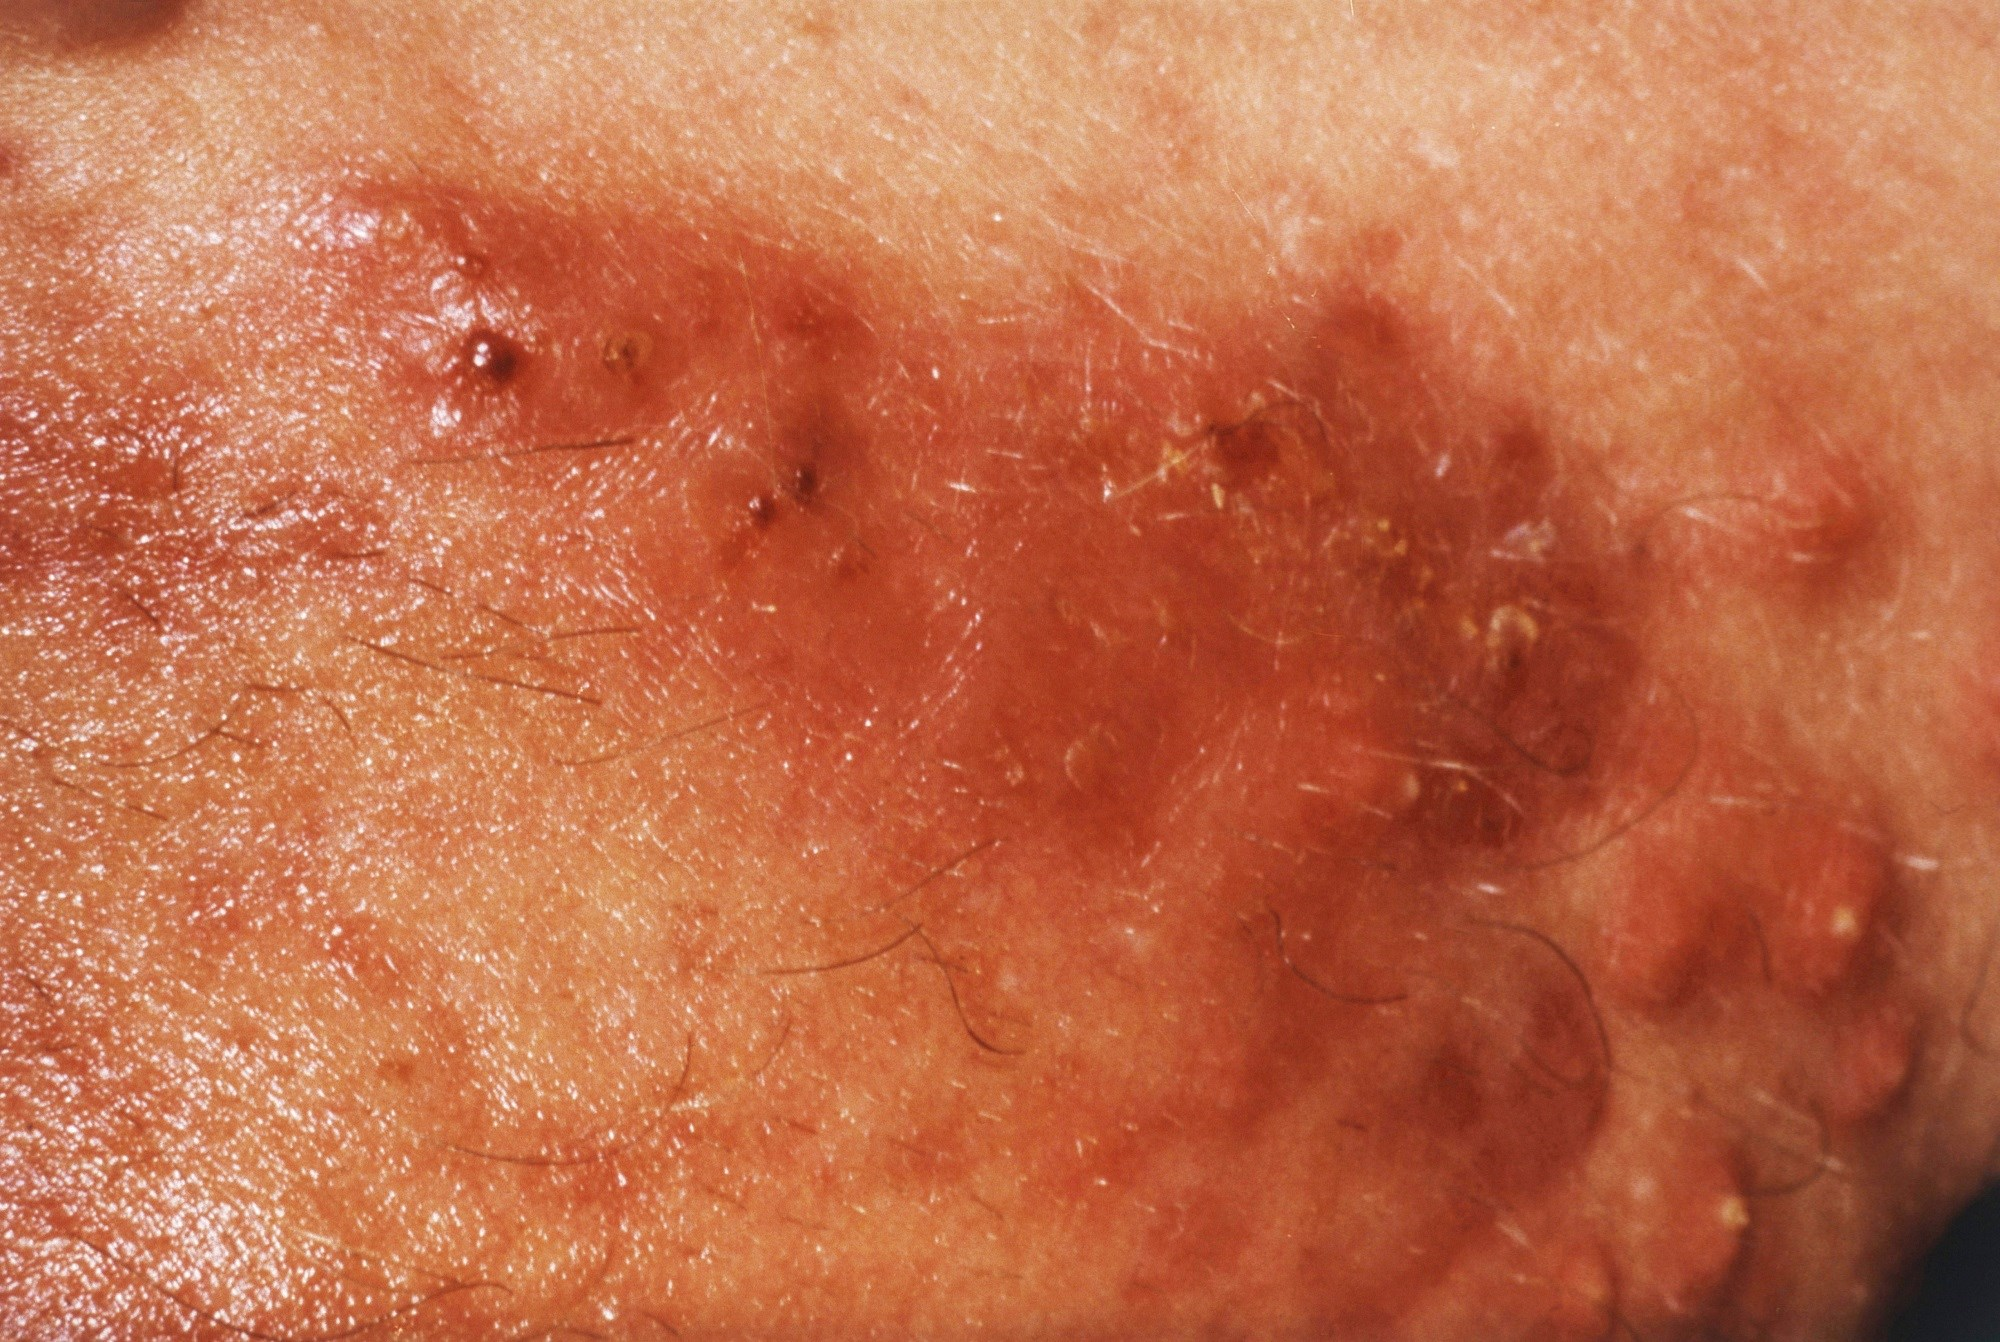 Efficacy of Acne Vulgaris Topical Treatment is Schedule-Dependent